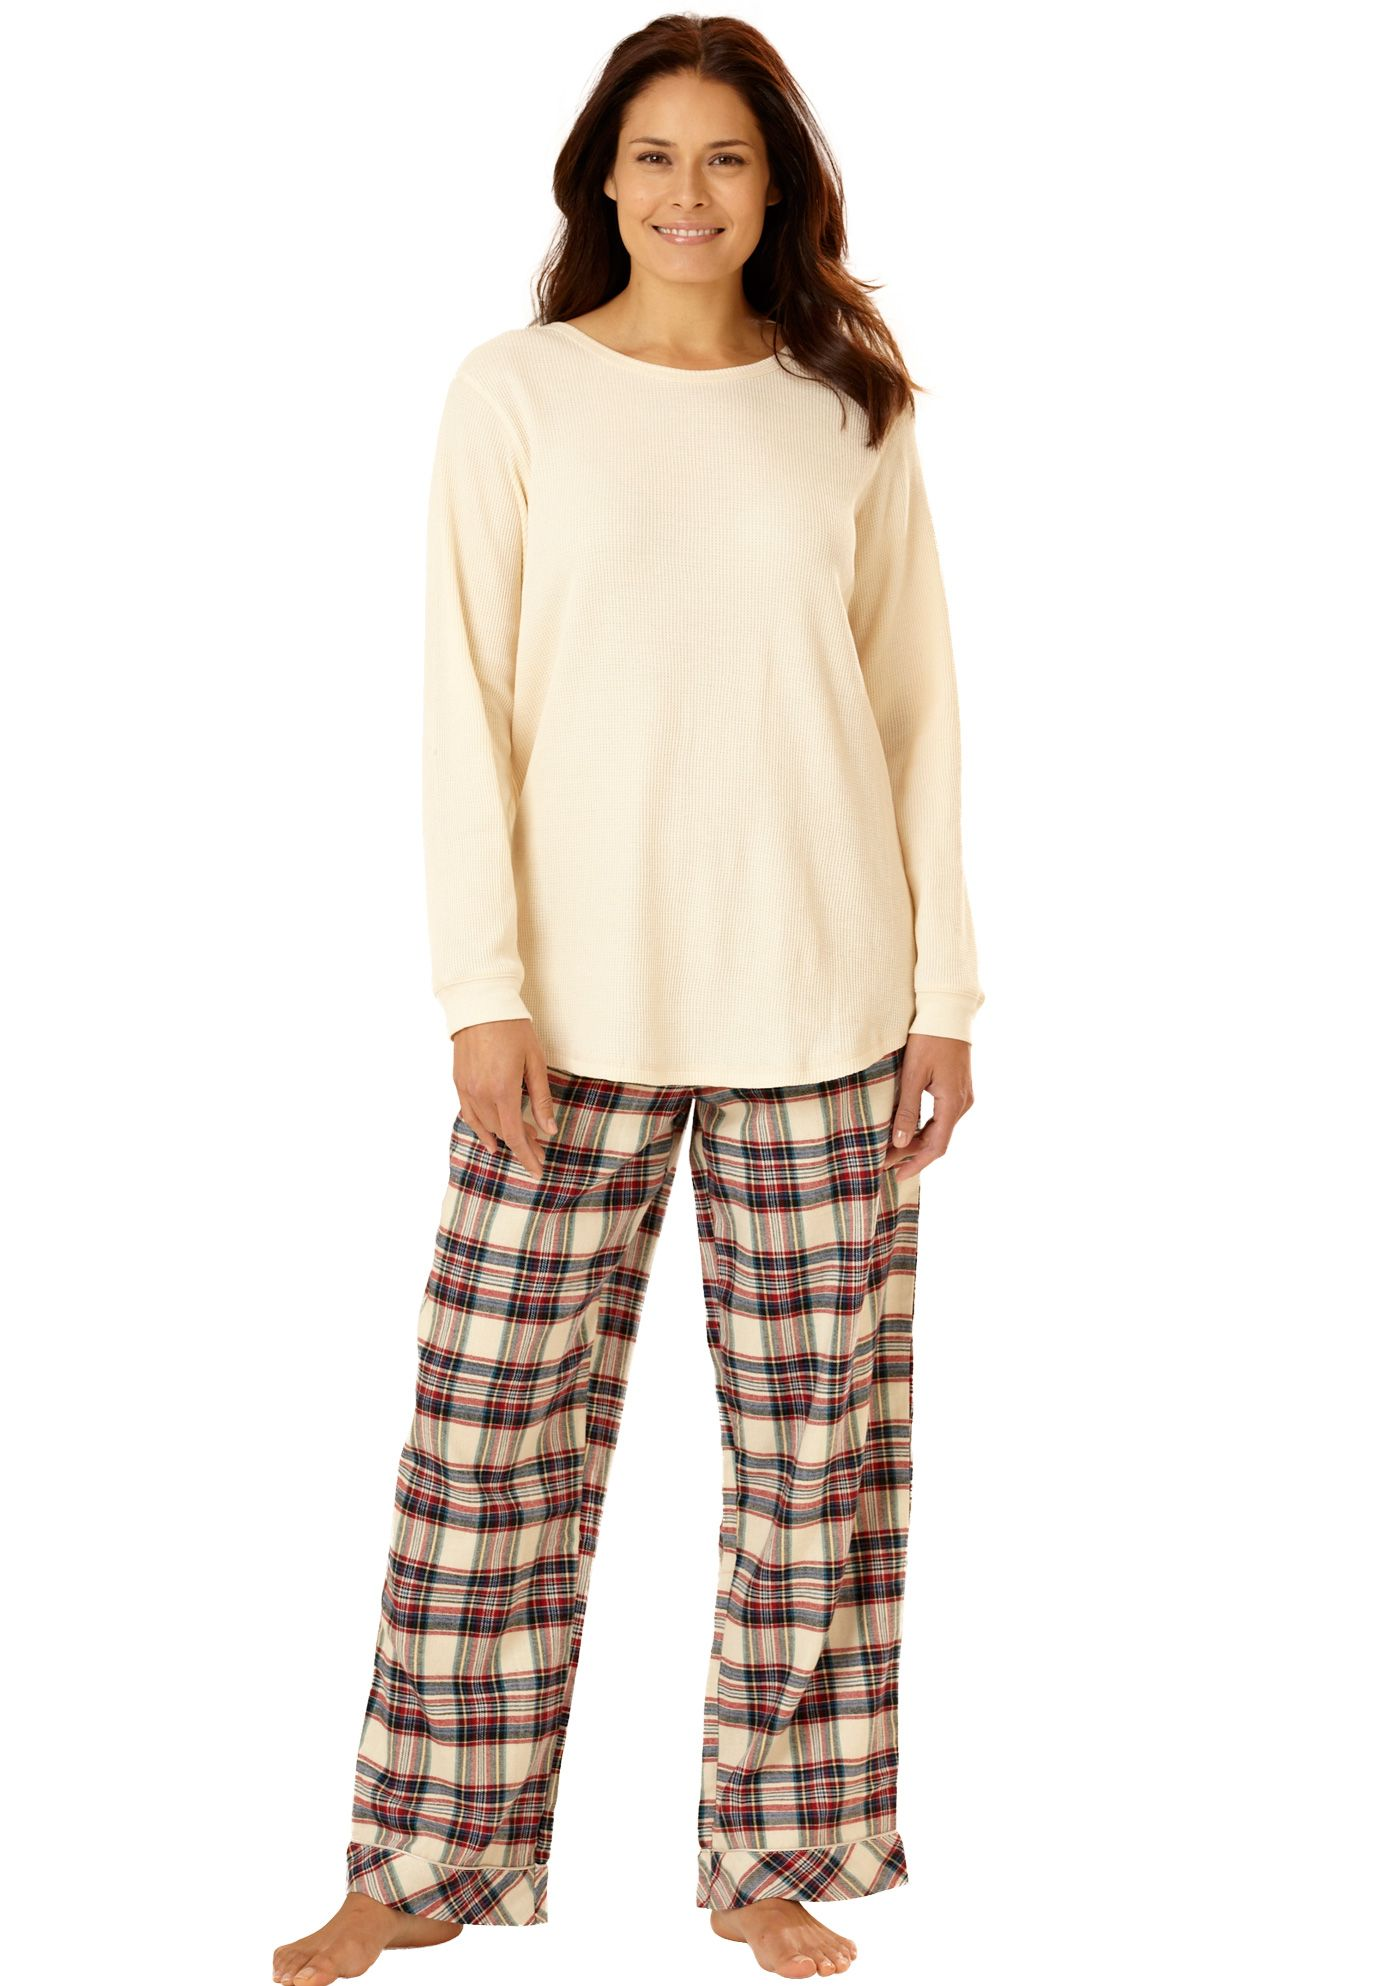 Thermal Flannel Pajamas By Only Necessities Cute Plus Size Clothes Plus Size Sleepwear Plus Size Outfits